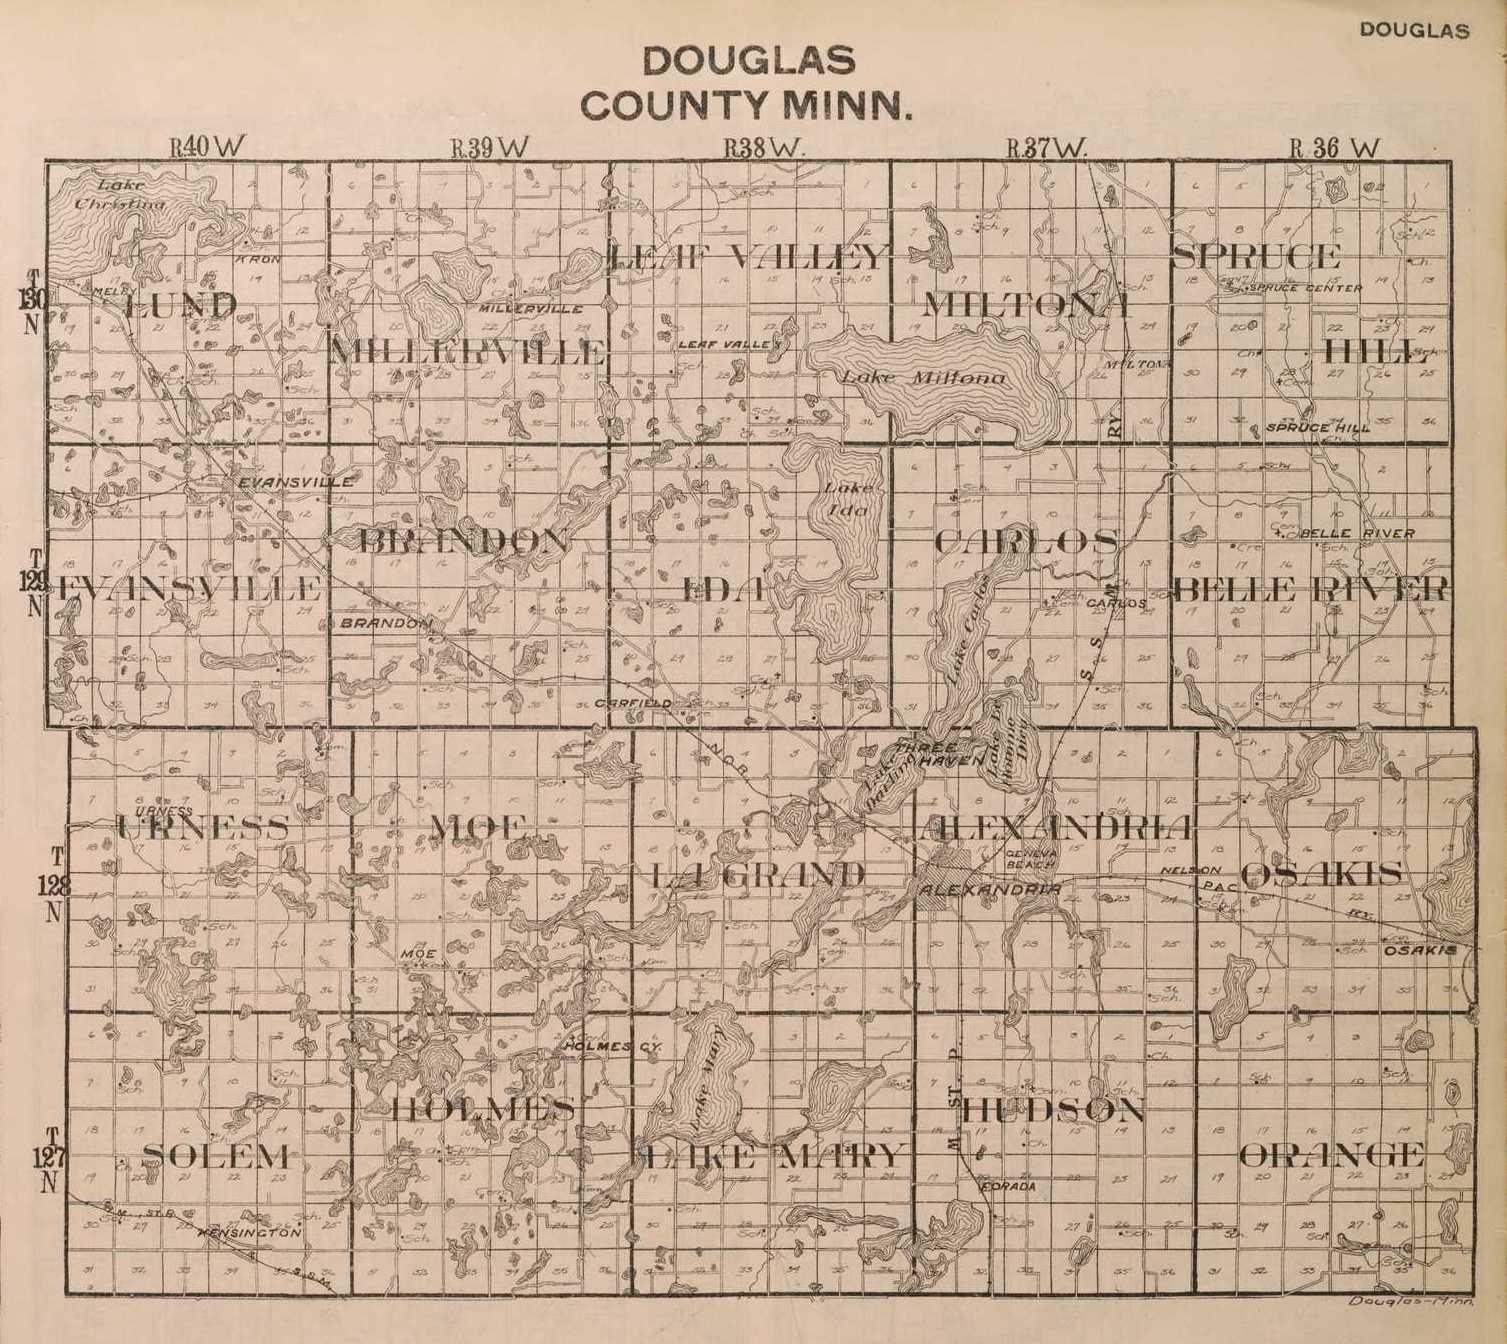 Douglas County Plat Map Townships of Douglas County, Minnesota – Douglas County Historical